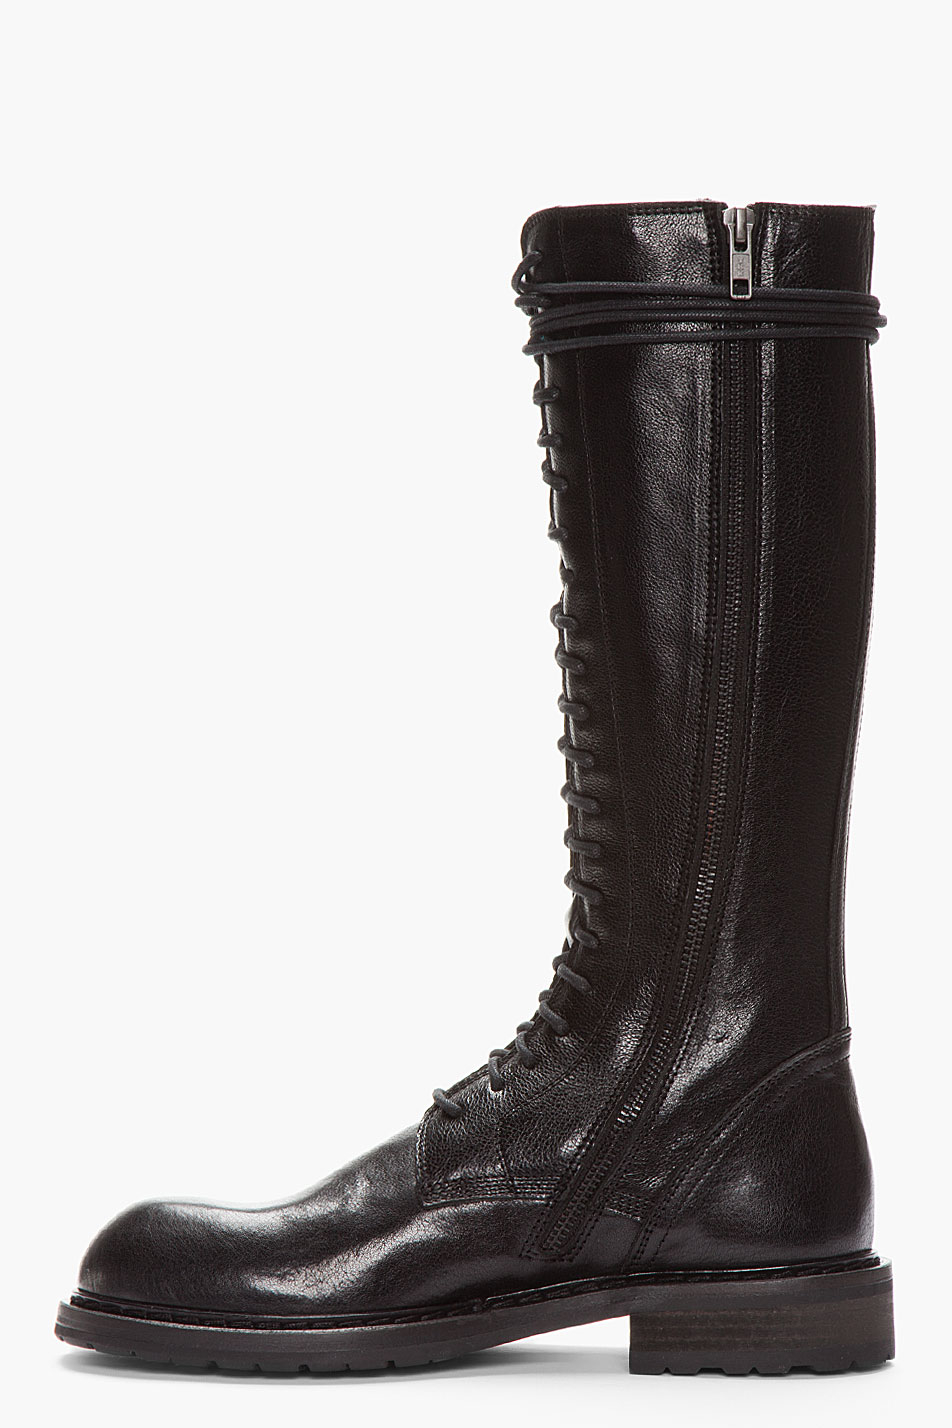 Lyst Ann Demeulemeester Tall Black Leather Lace Up Boots